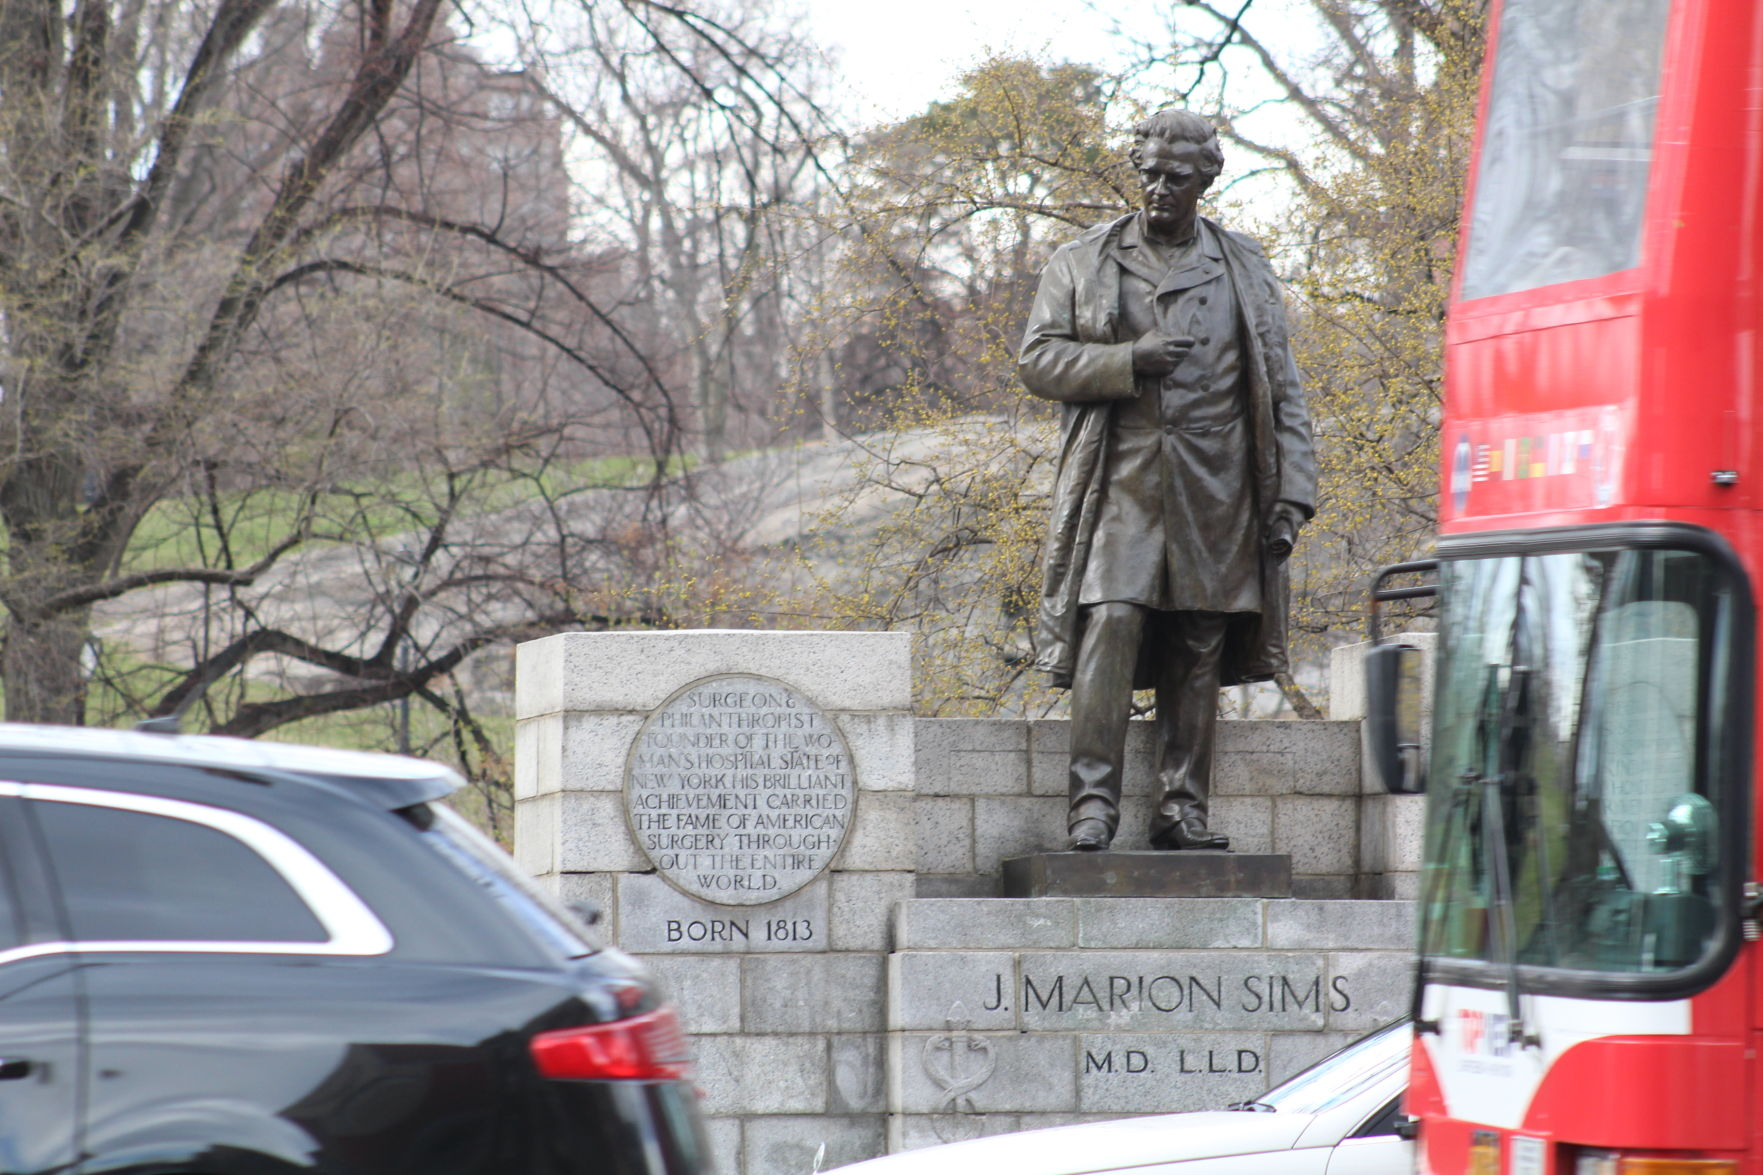 Statue of J. Marion Sims, notorious South Carolina doctor, moved out of Manhattan